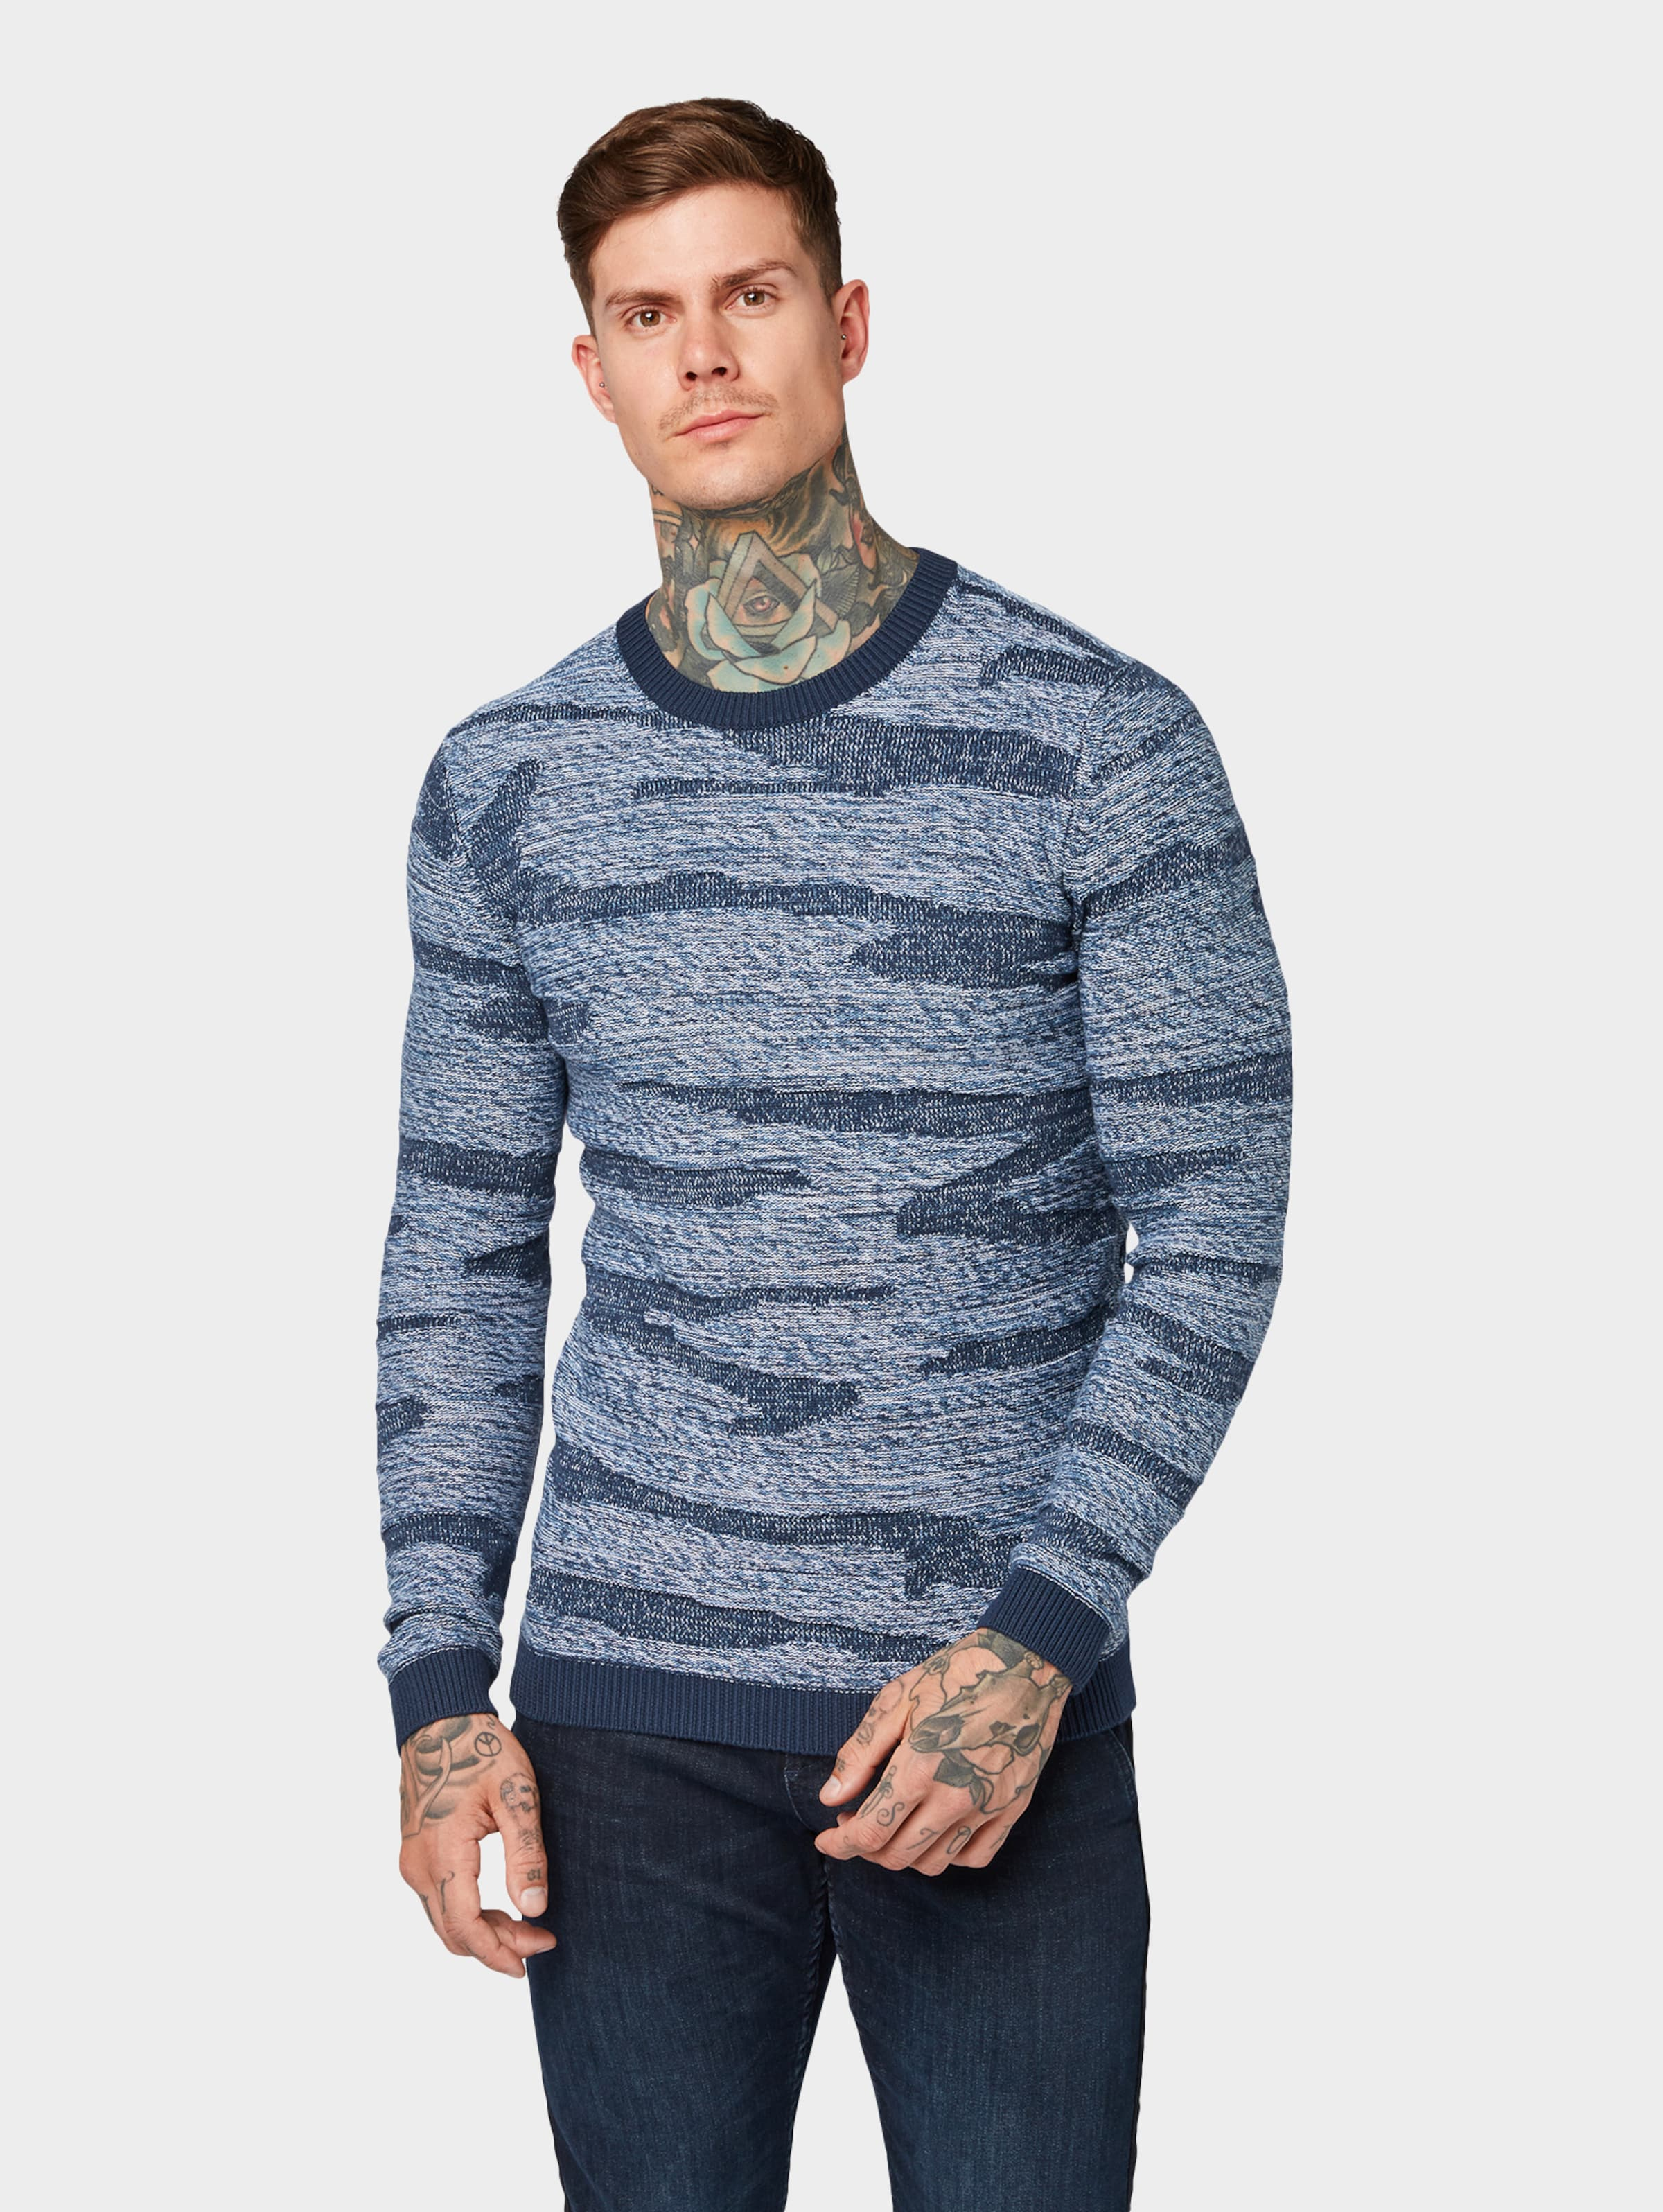 Pullover In Hellblau Tom Denim Tailor f6gybv7Y